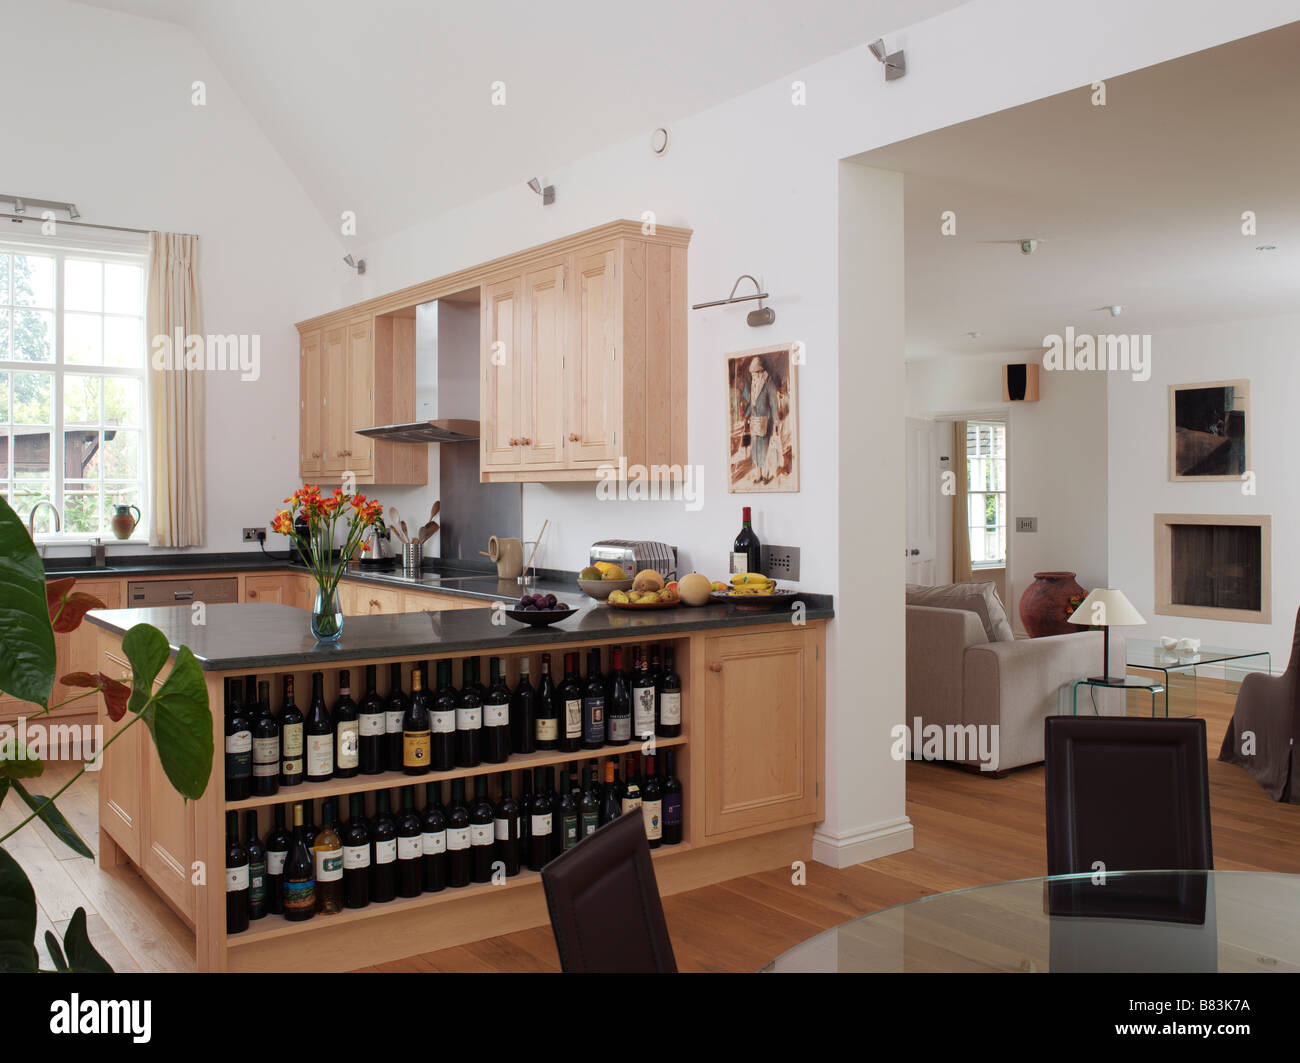 open plan kitchen and dining room with wine shelves and view